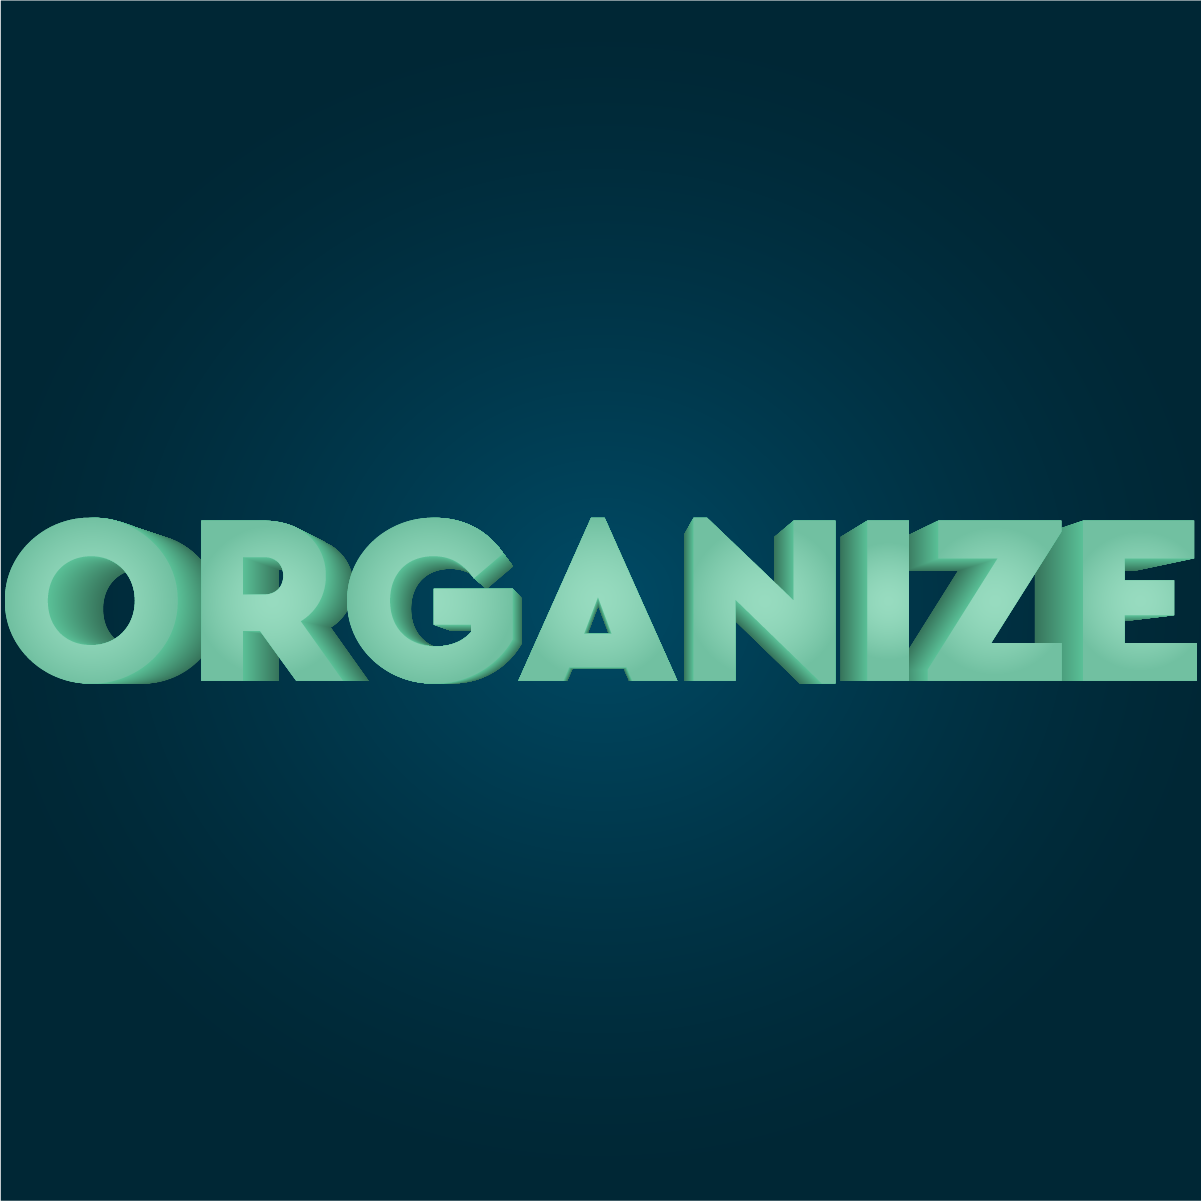 6.Organize and track your activities image